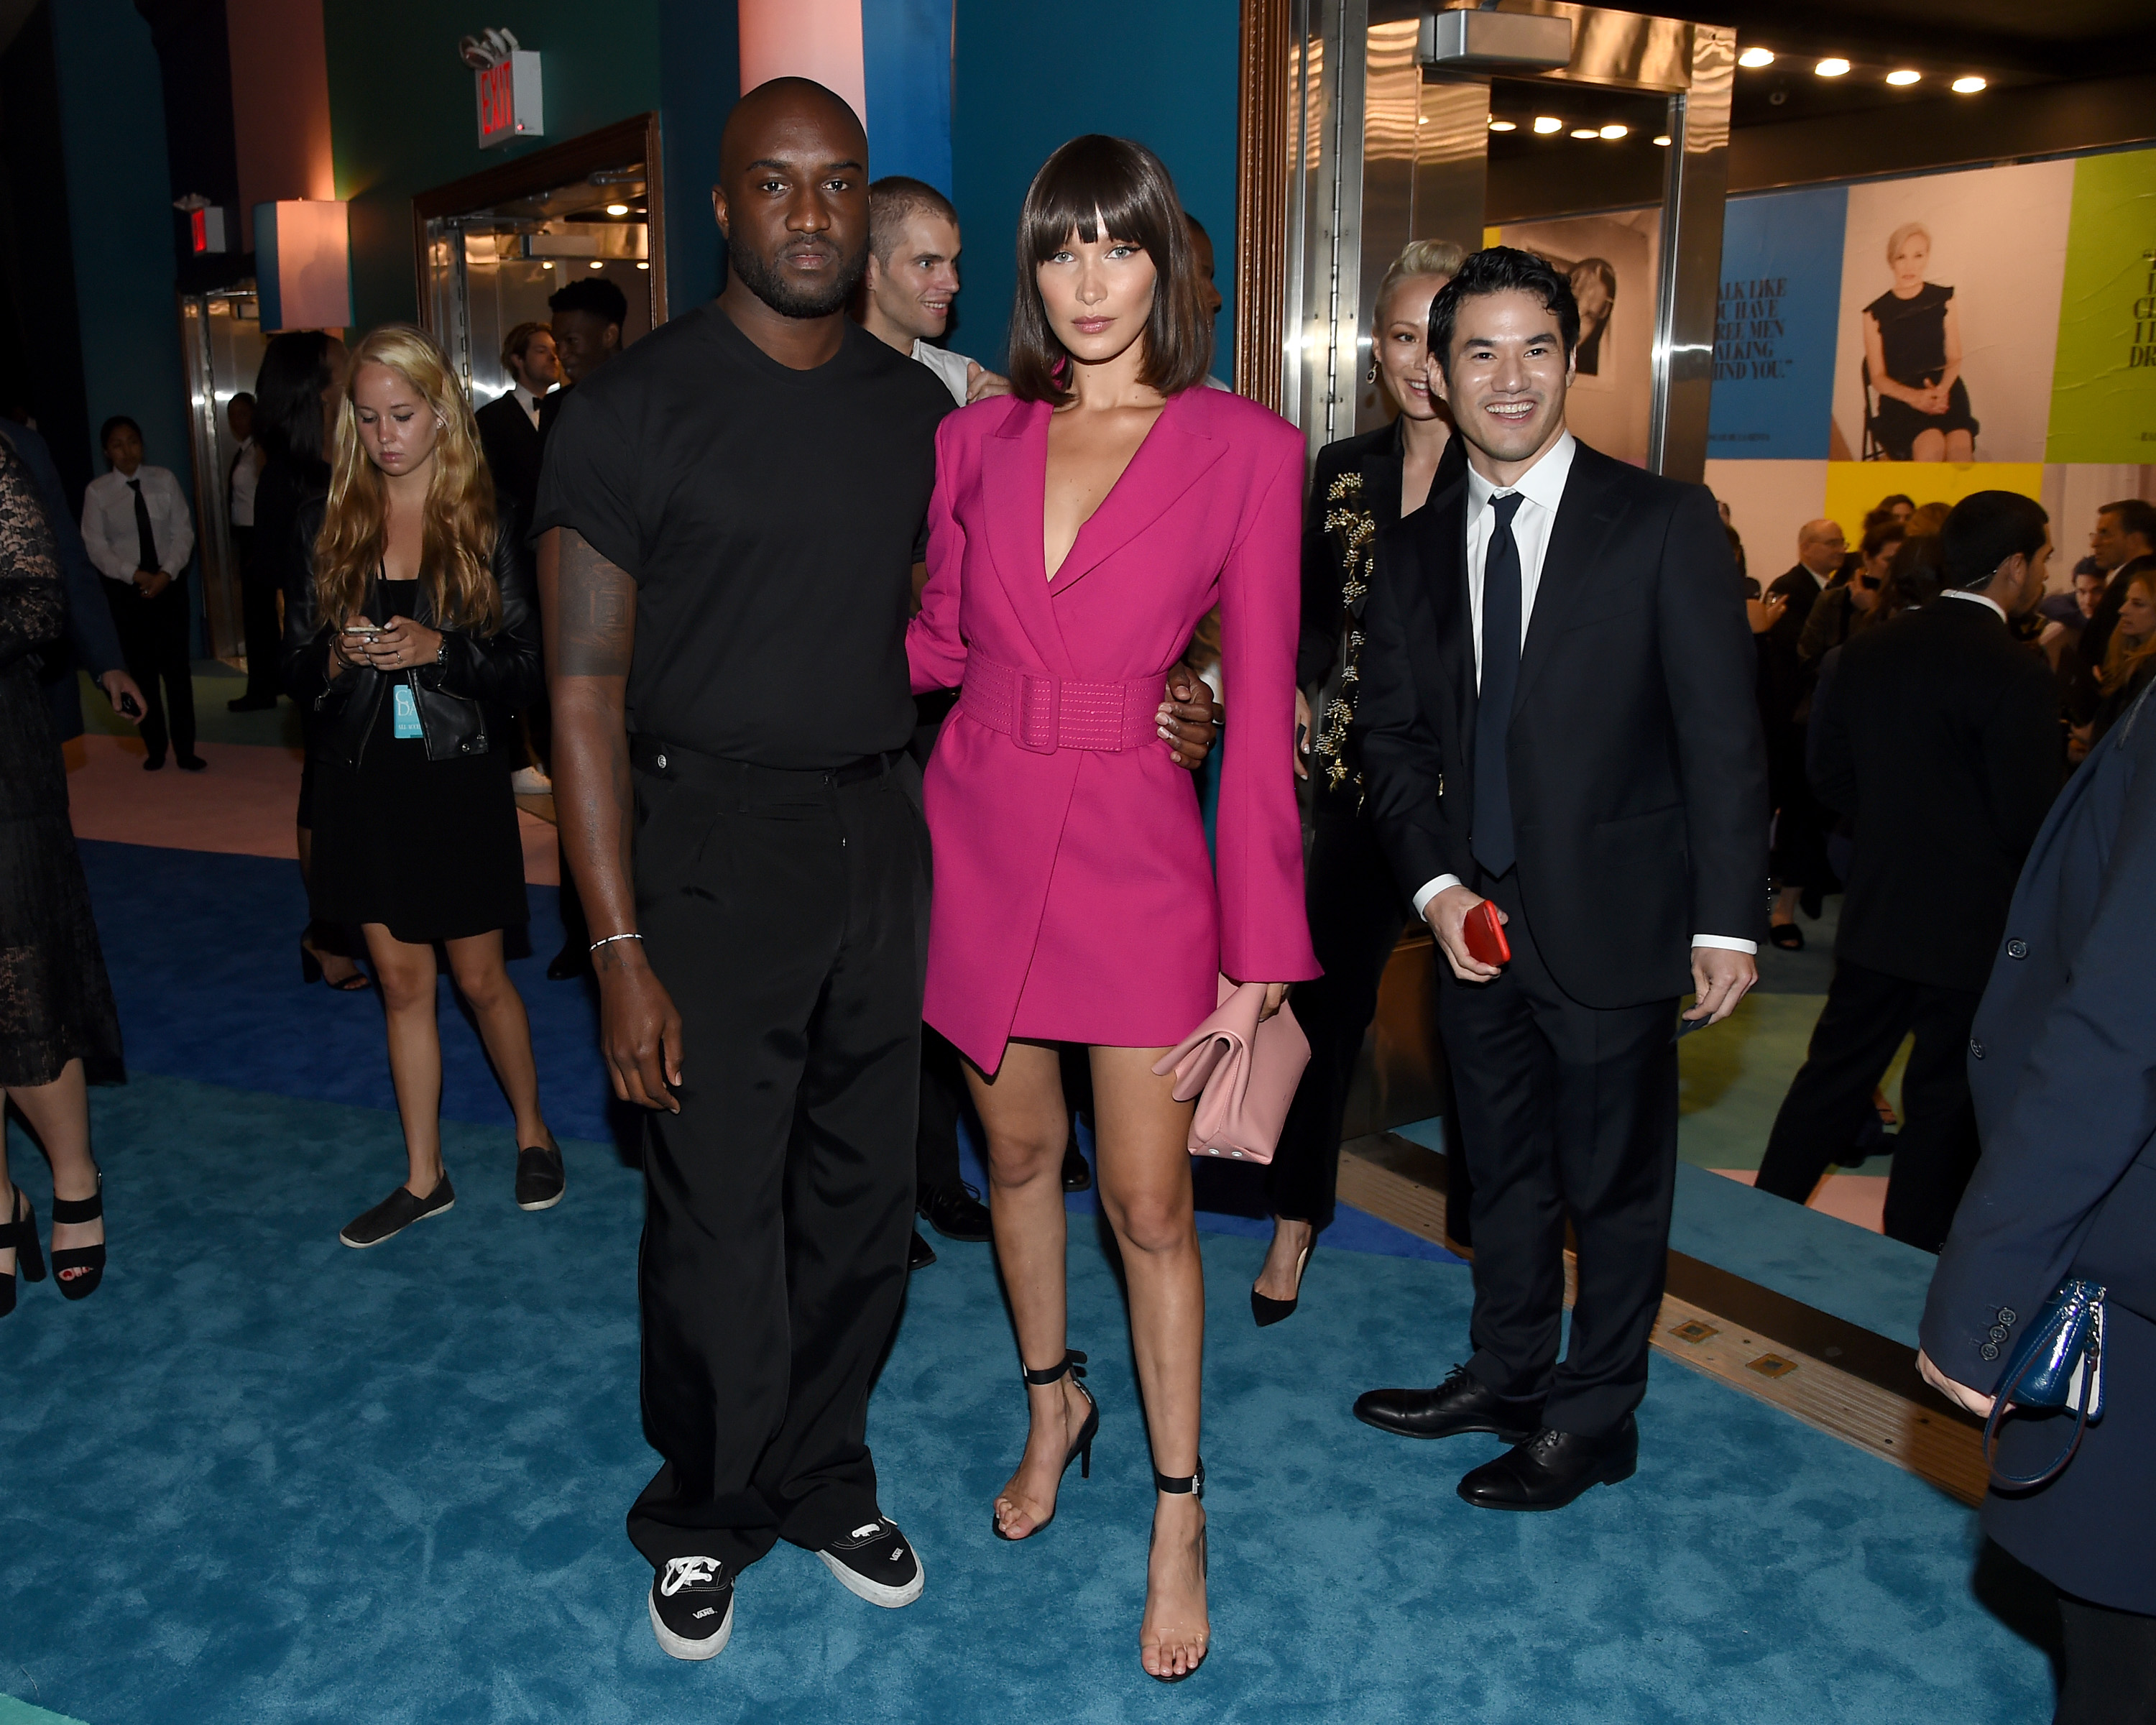 NEW YORK, NY - JUNE 05:  Virgil Abloh and Bella Hadid attend the 2017 CFDA Fashion Awards at Hammerstein Ballroom on June 5, 2017 in New York City.  (Photo by Nicholas Hunt/Getty Images)